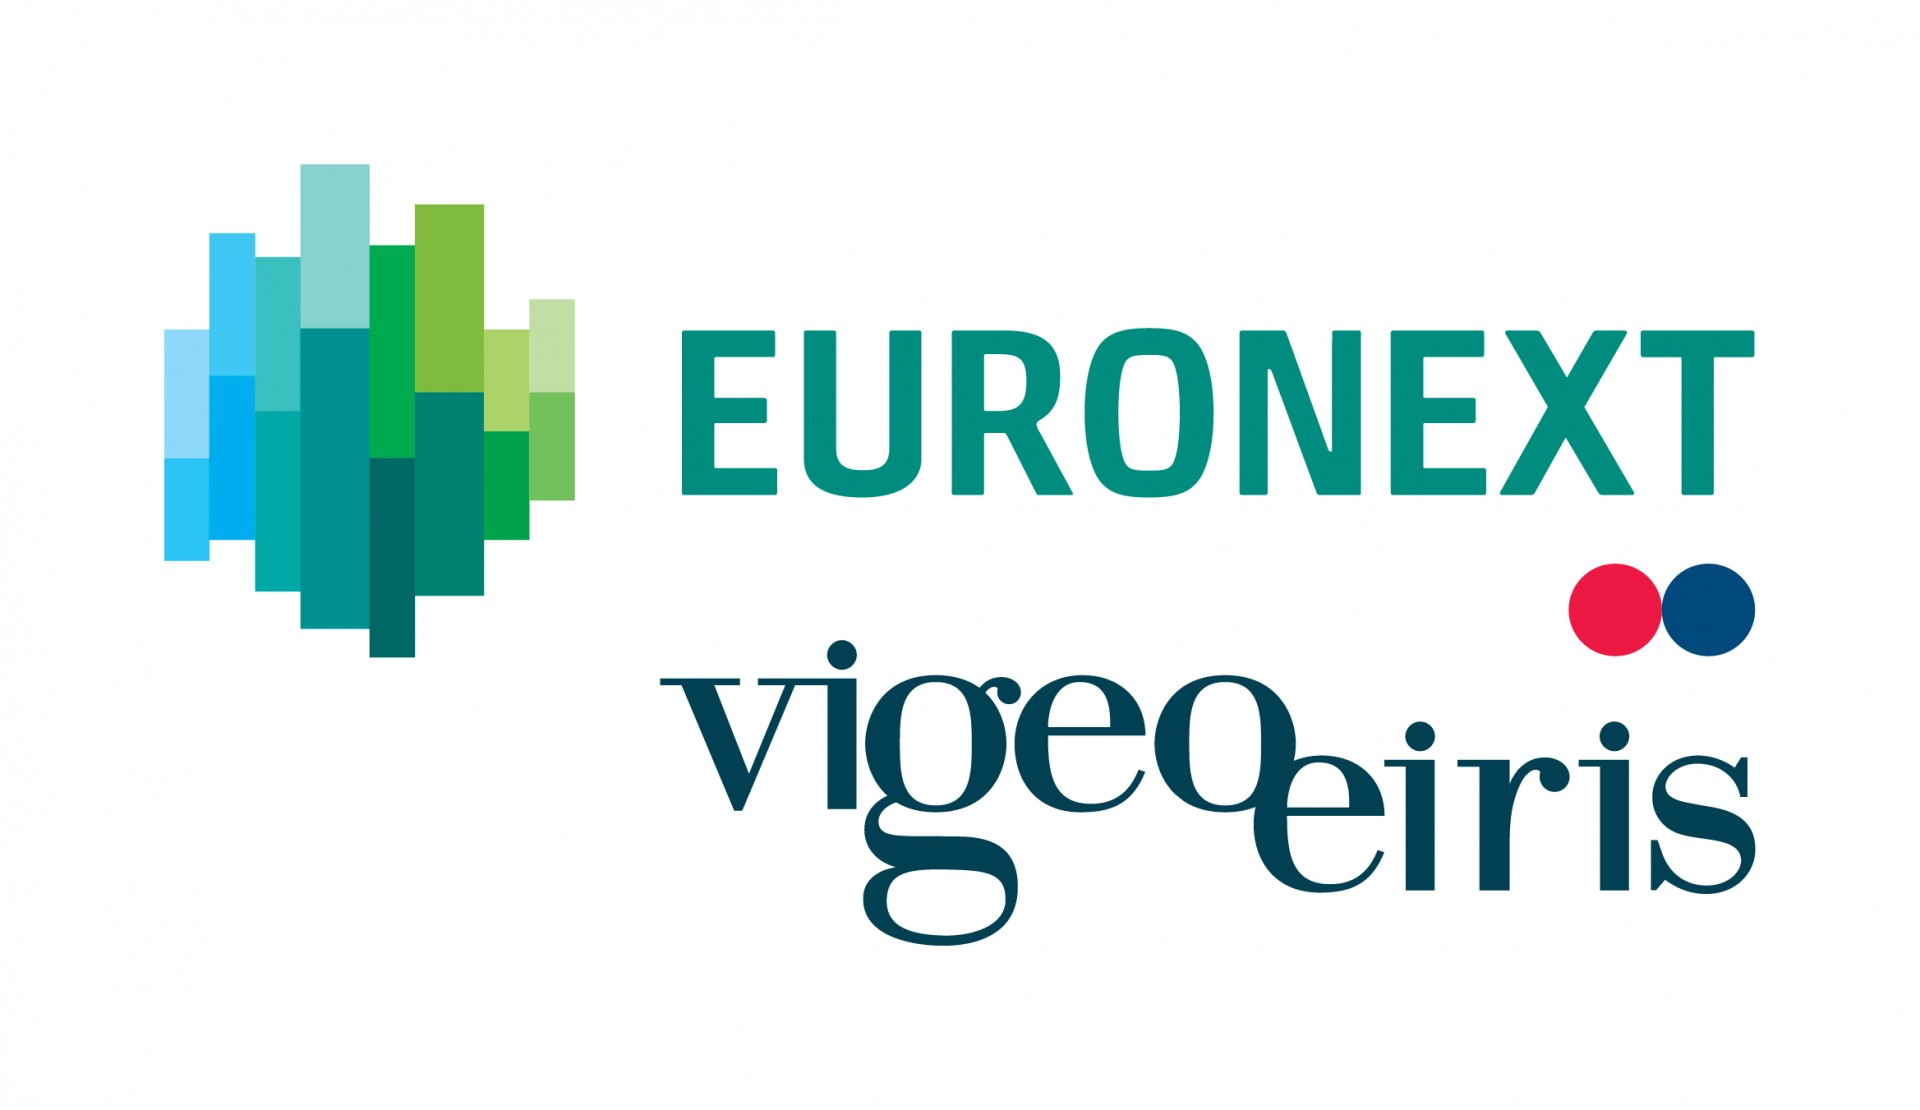 In Partnership With Vigeo Eiris Euronexts CAC 40R Governance Index Ranks 40 Companies According To Their Responsible Score